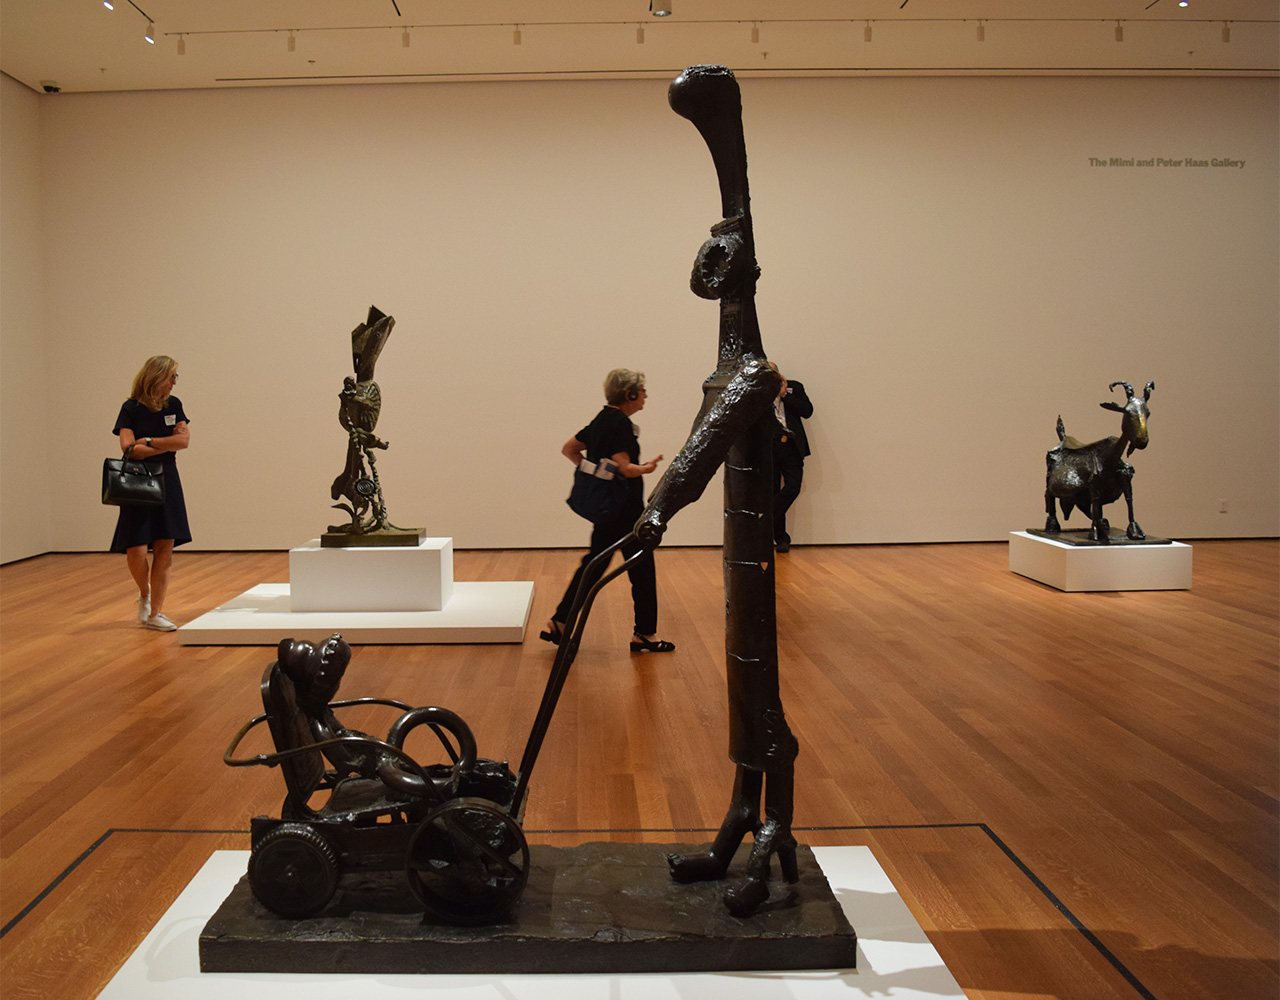 """Installation view of 'Picasso Sculpture' at the Museum of Modern Art with Pablo Picasso's """"Woman with a Baby Carriage"""" (1950–54) in the foreground"""